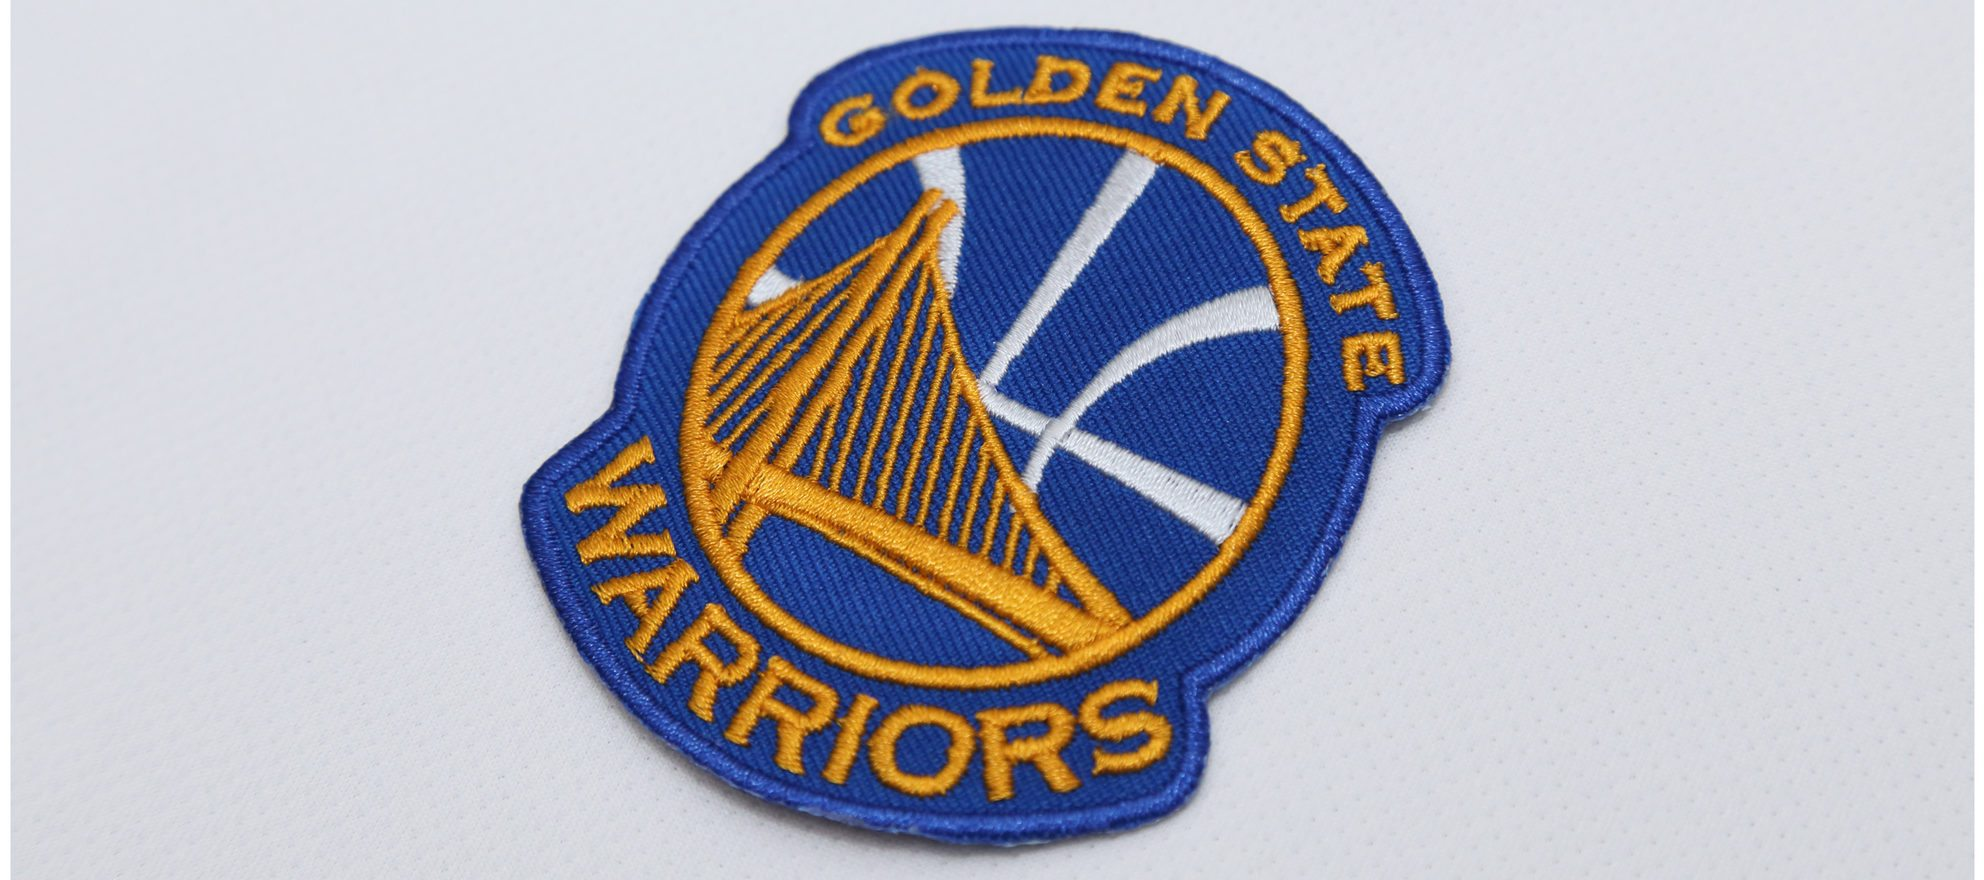 realtor.com golden state warriors